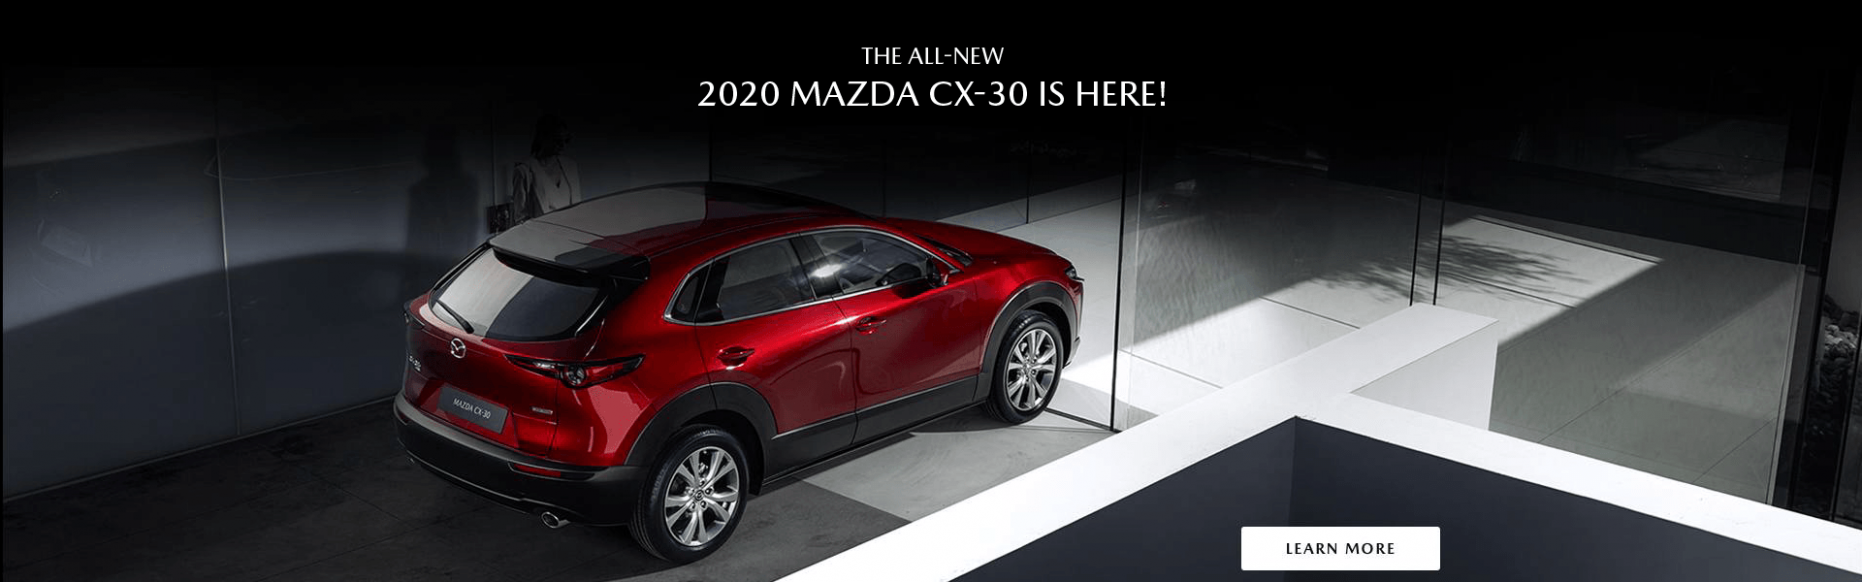 Manufacturer Offers - Windsor Mazda - mazda employee pricing 2020